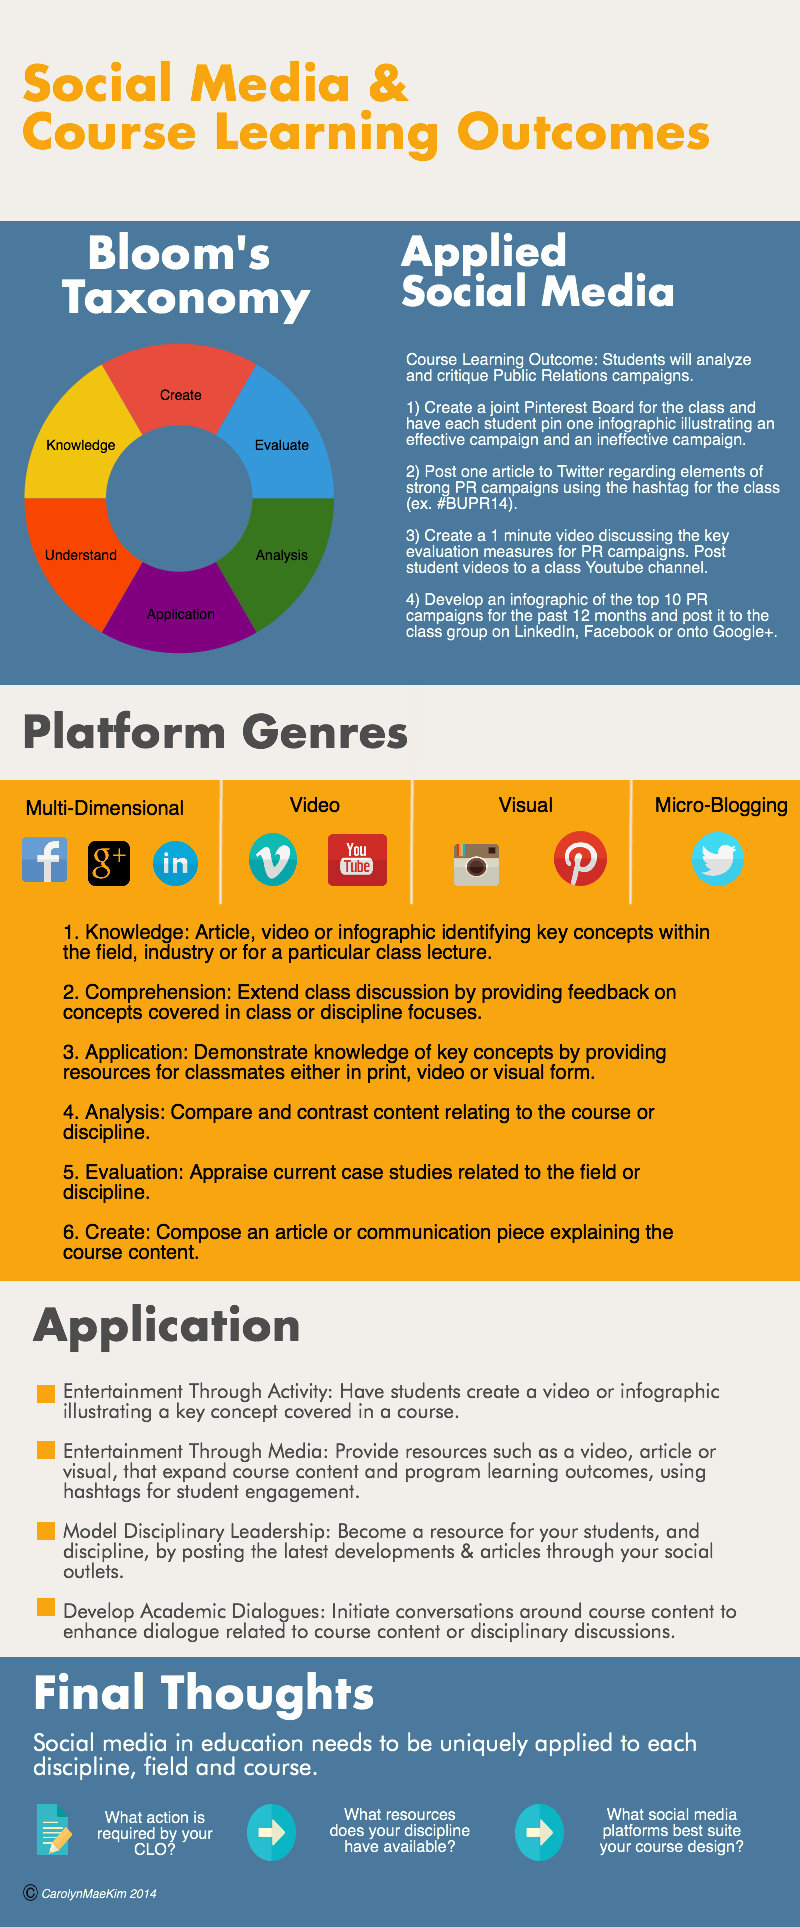 Social Media and Course Learning Outcomes